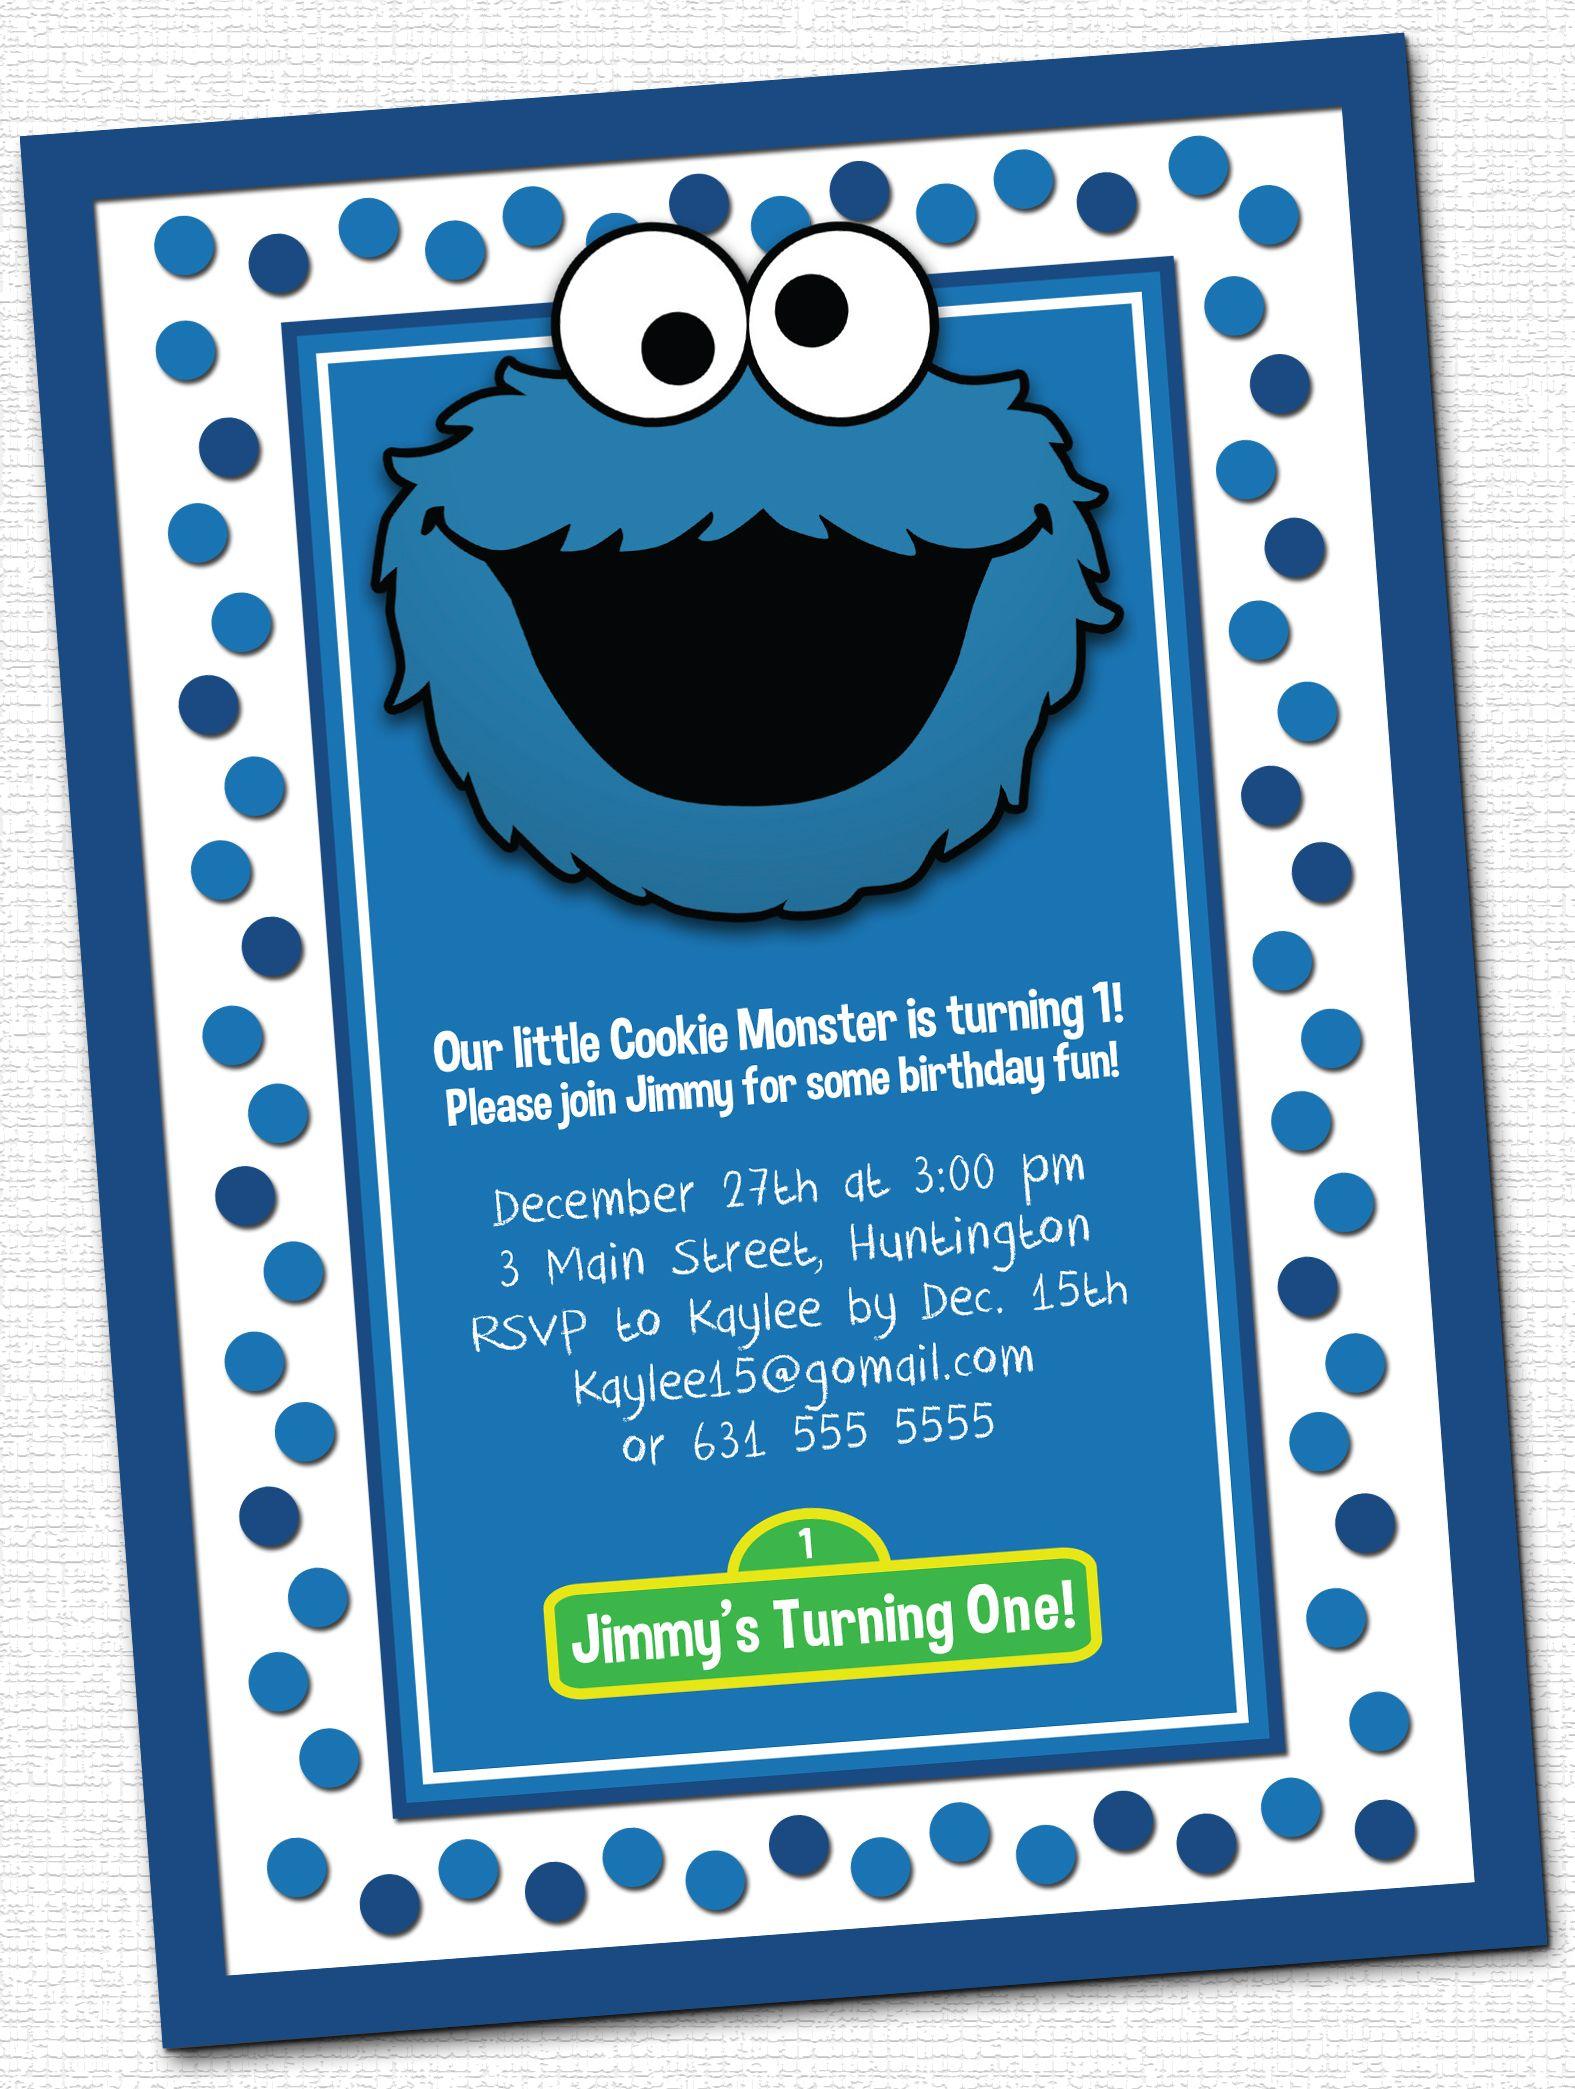 Cookie Monster Birthday Invitations is an amazing ideas you had to choose for invitation design